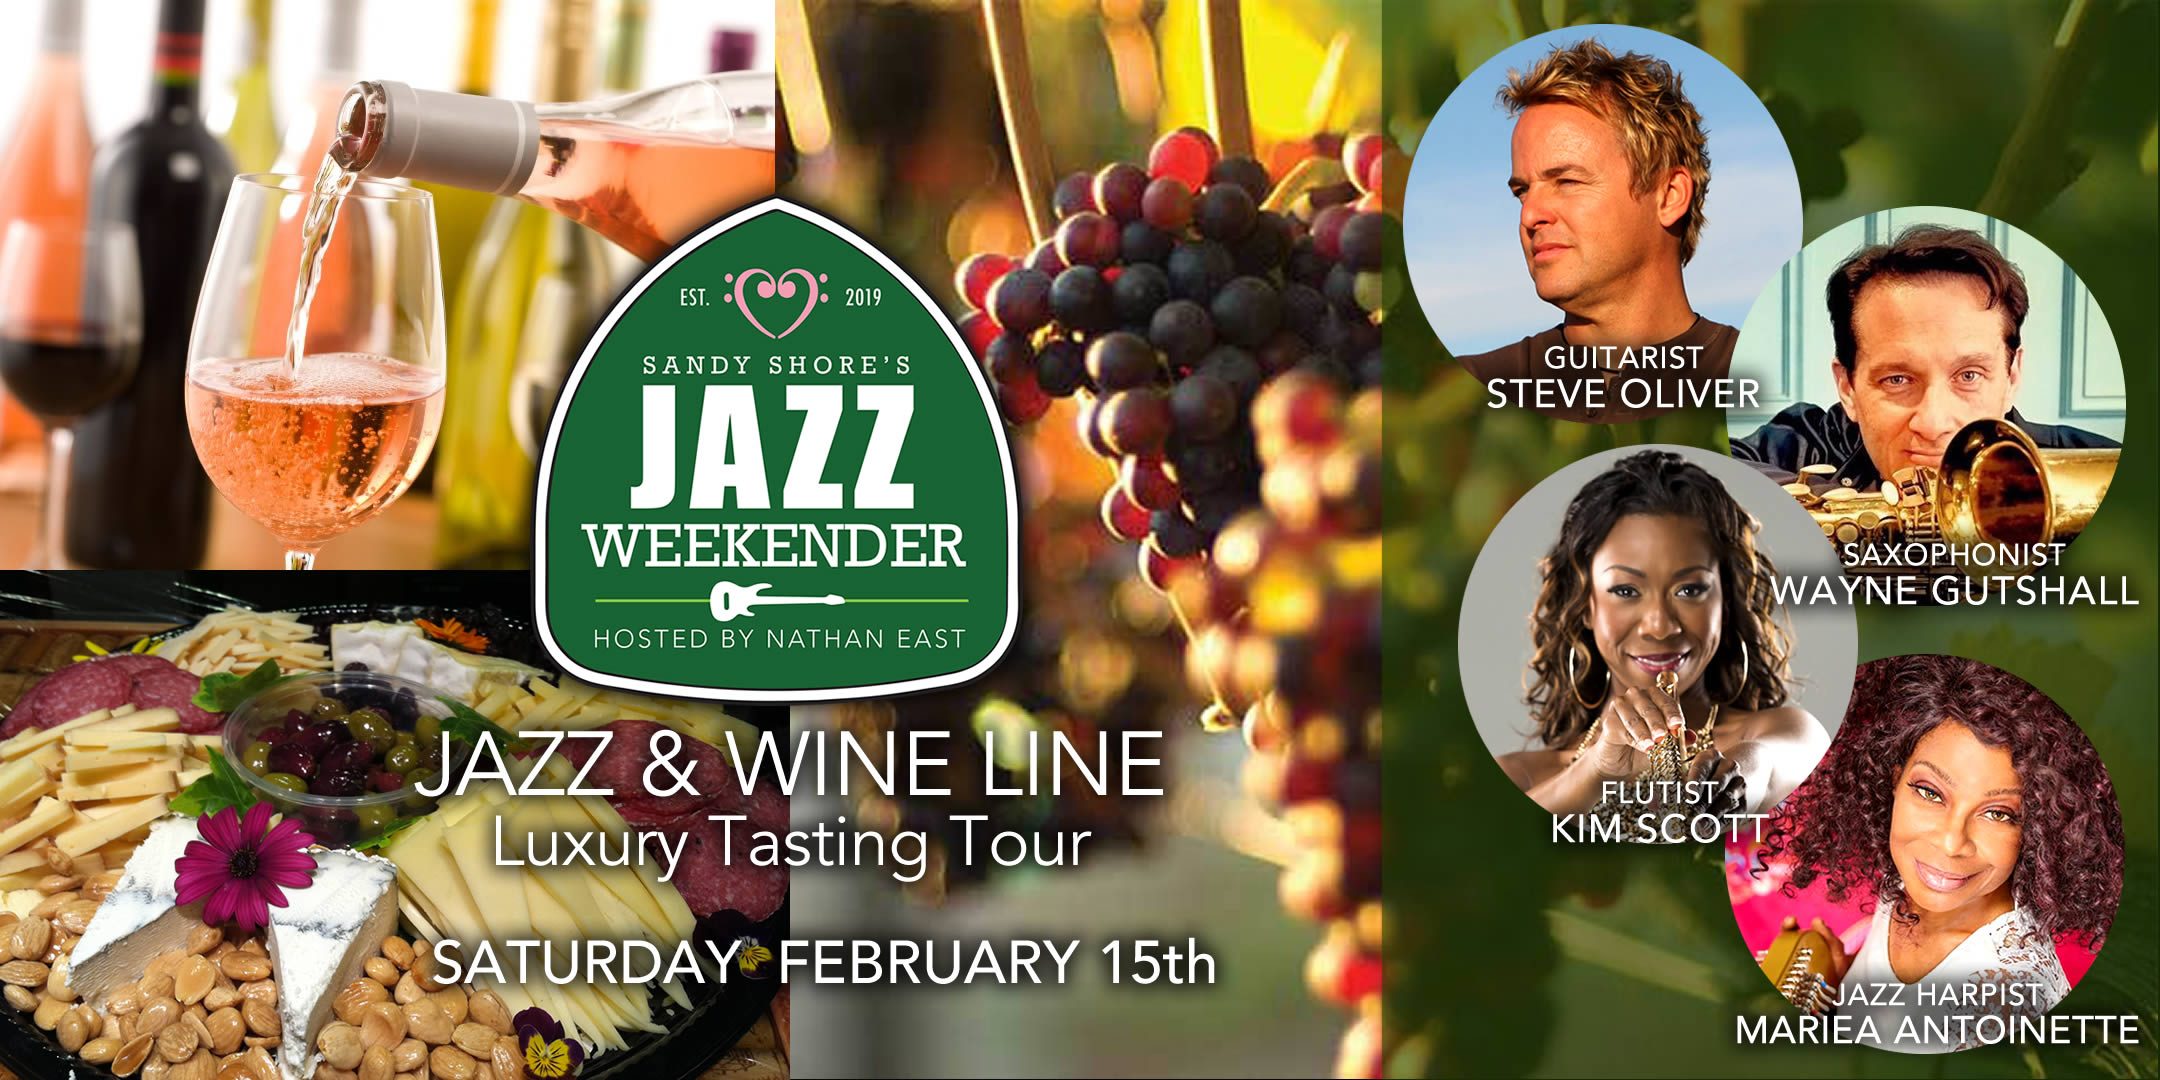 Jazz Weekender Jazz & Wine Line Luxury Tasting Trou